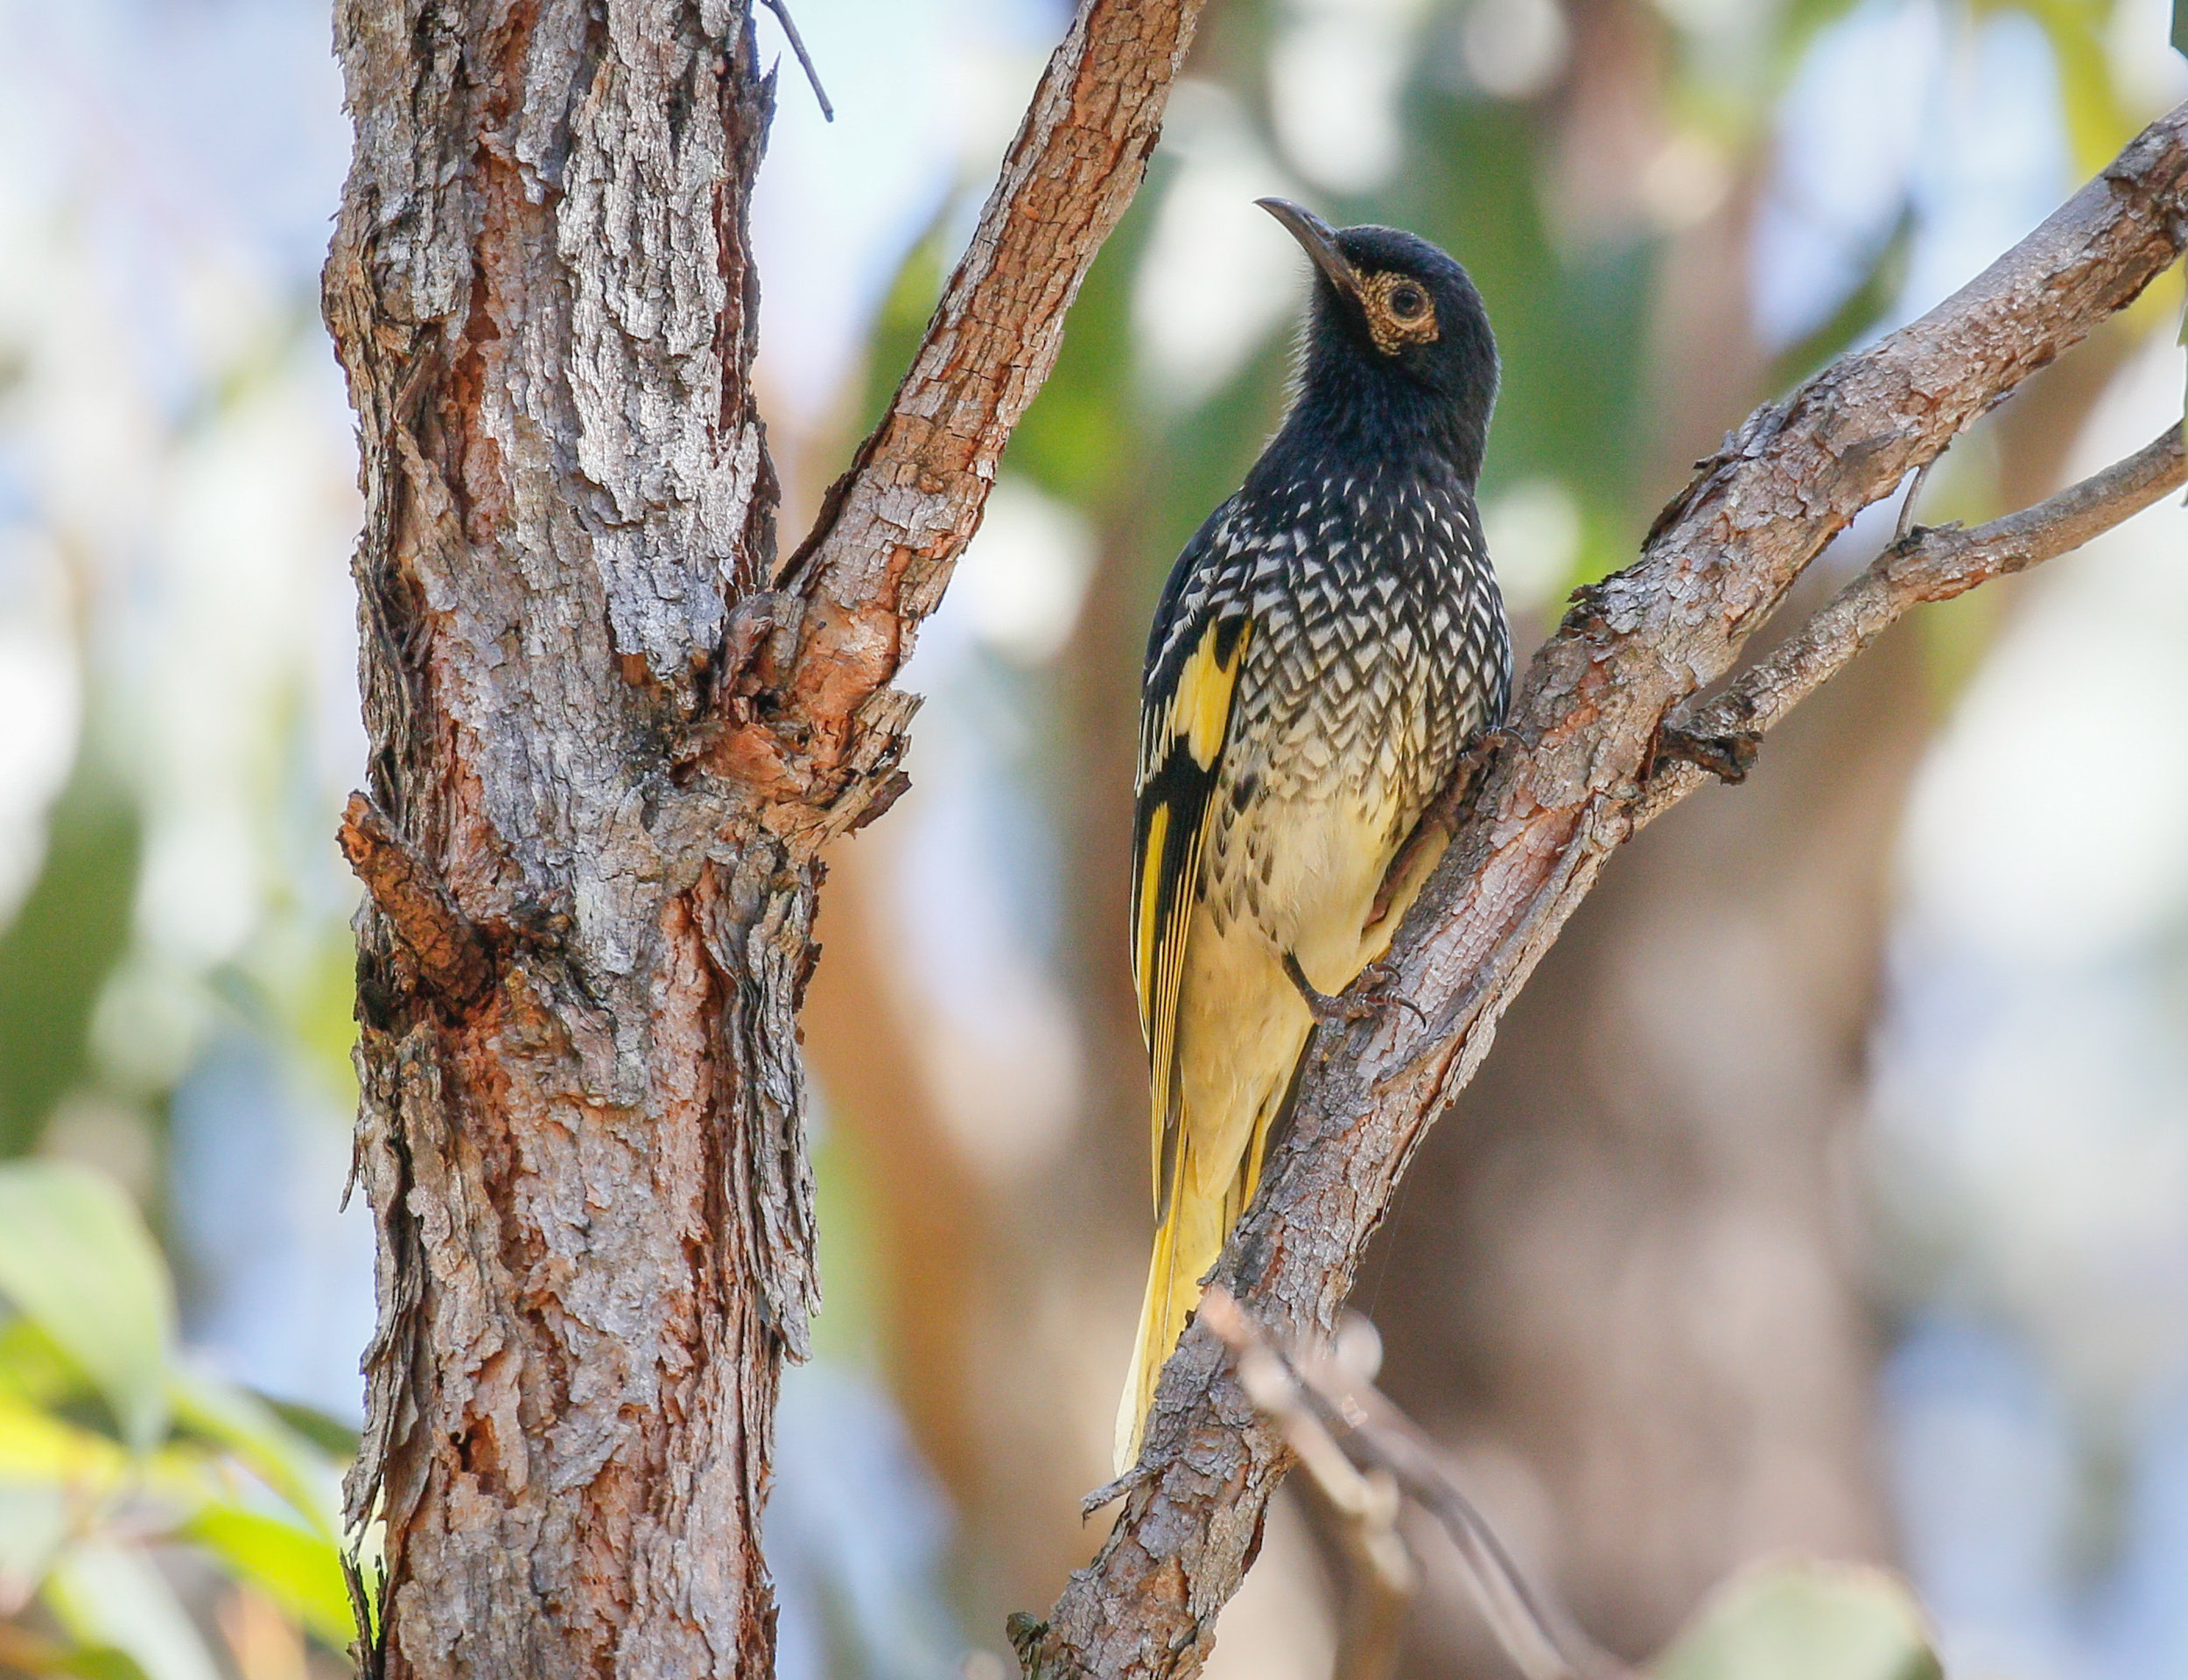 - BirdLife Australia is calling on the NSW and Australian Governments, and Cessnock City Council to permanently protect the important breeding habitat of the Critically Endangered Regent Honeyeater from imminent destruction by the development of the Hunter Economic Zone.